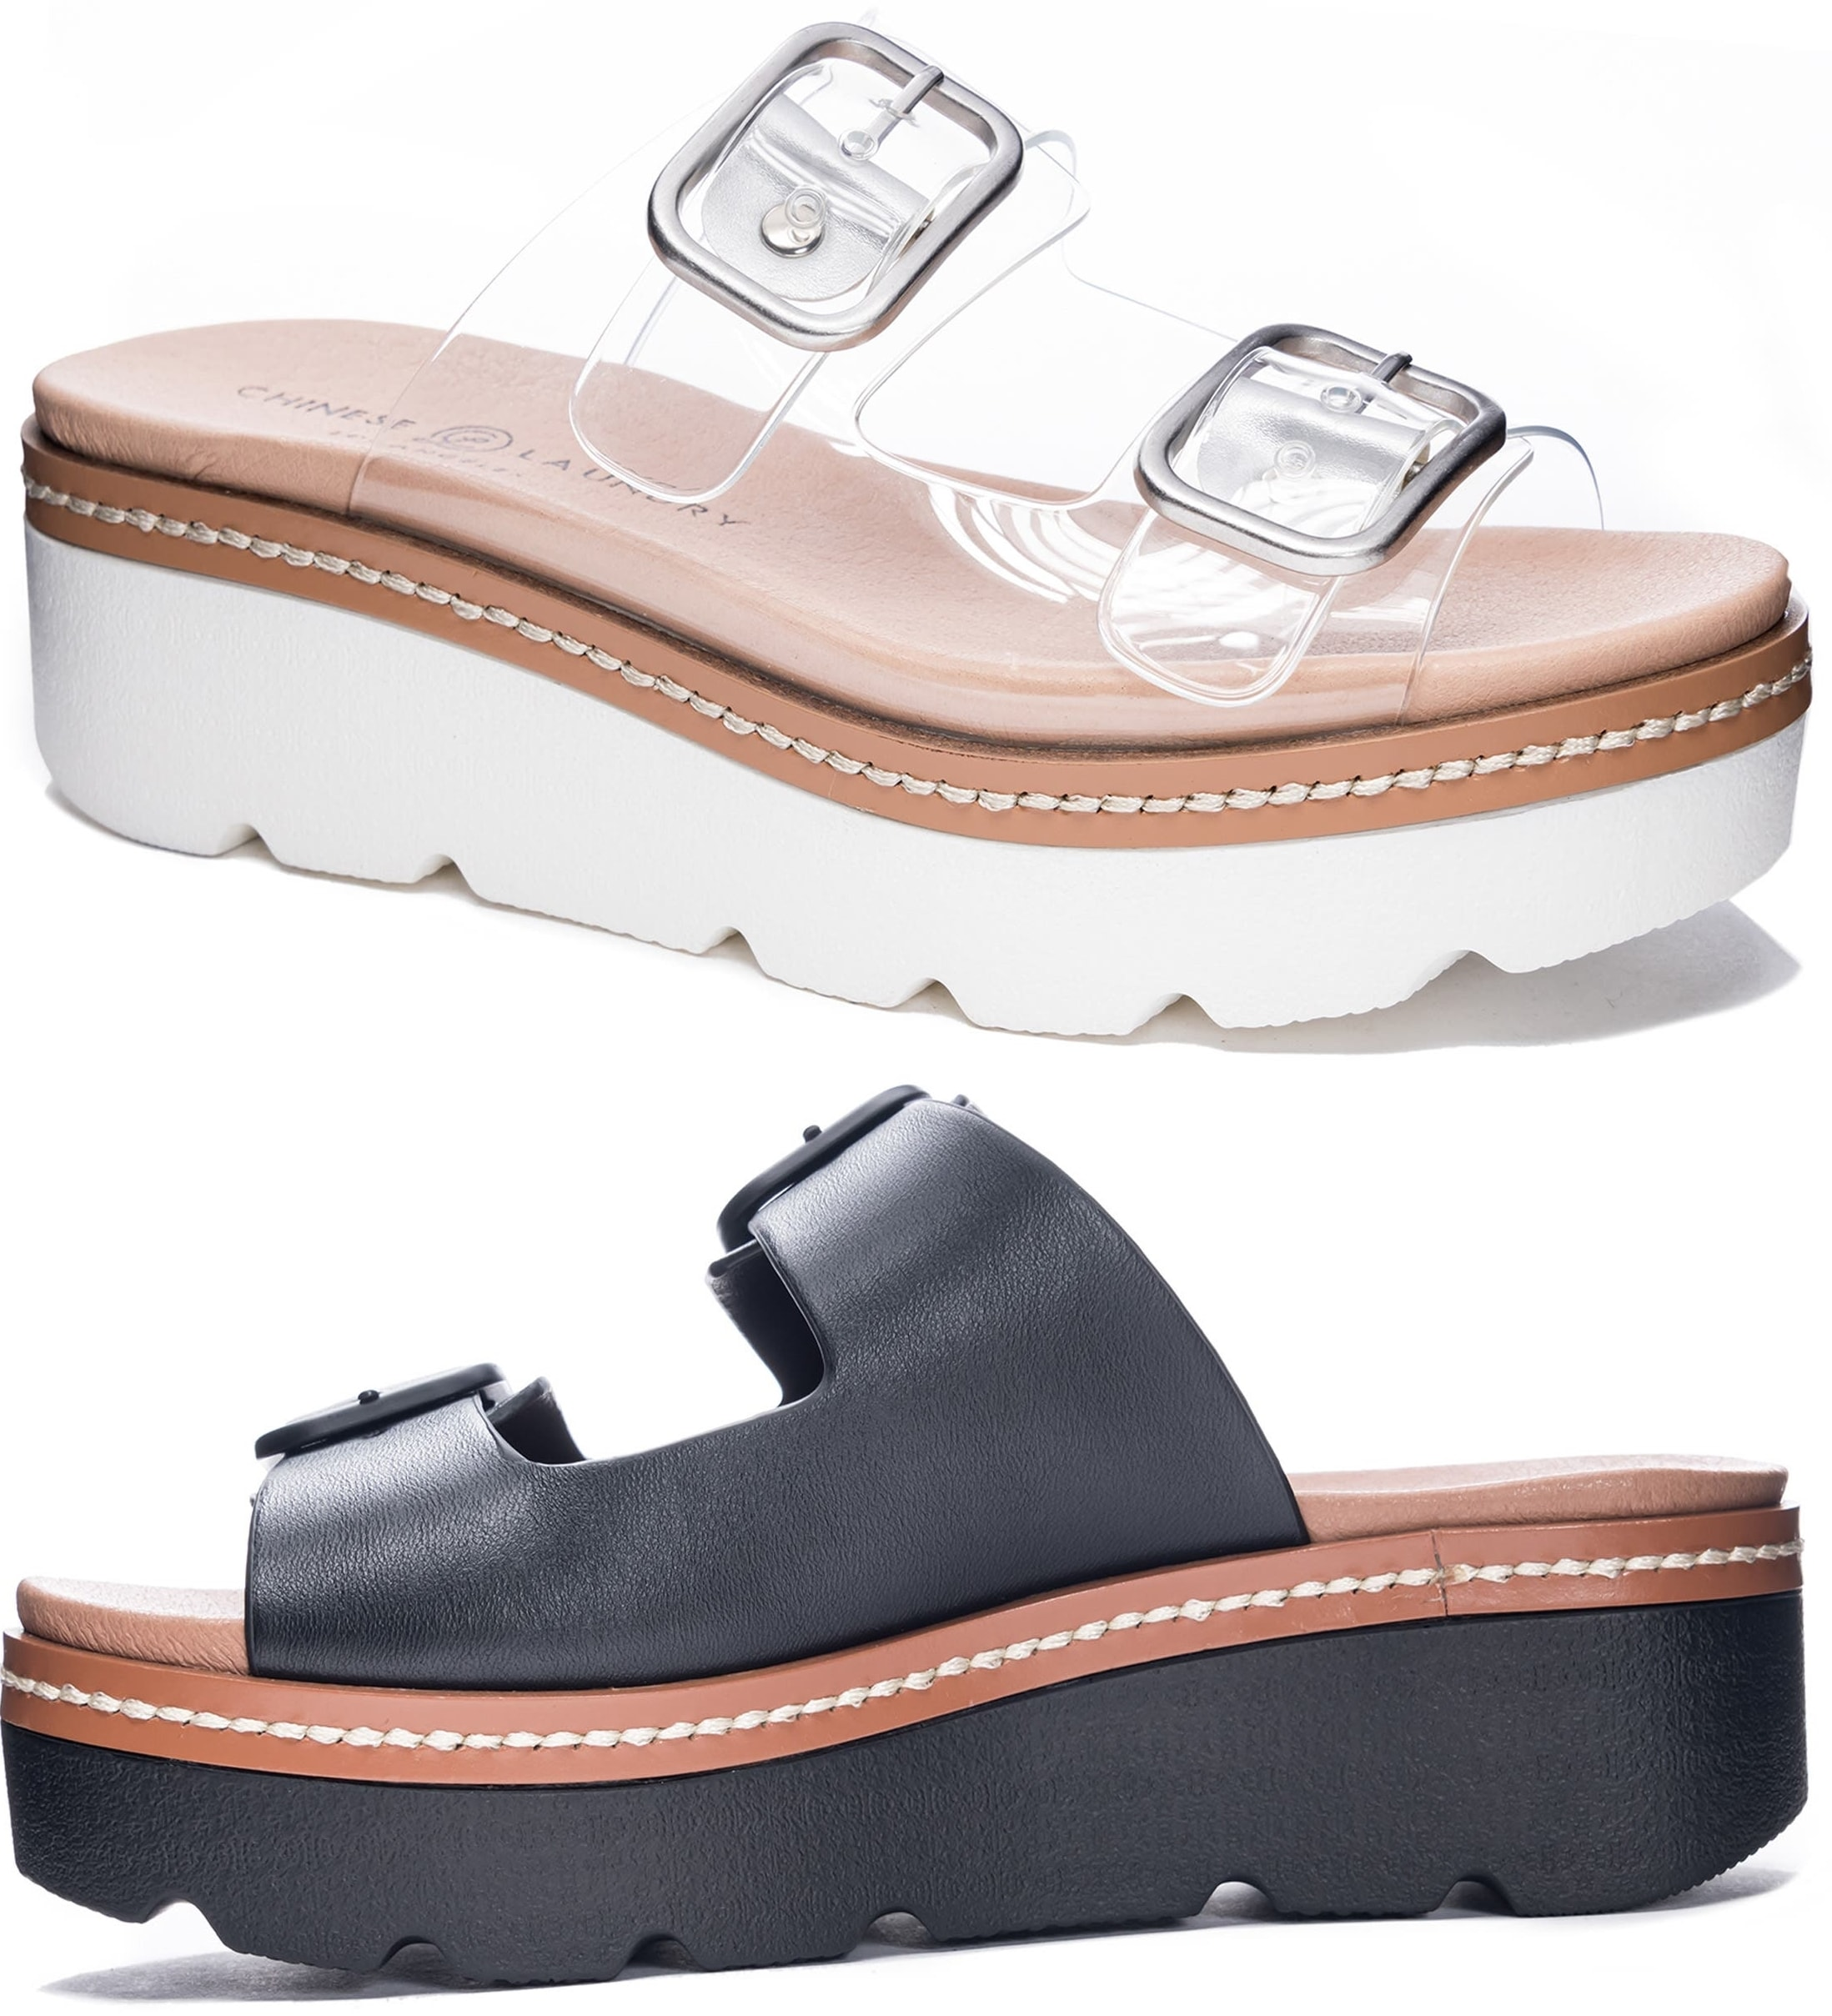 Chinese Laundry's Surfs Up buckled flatform sandal provides comfortable upport with a contoured footbed